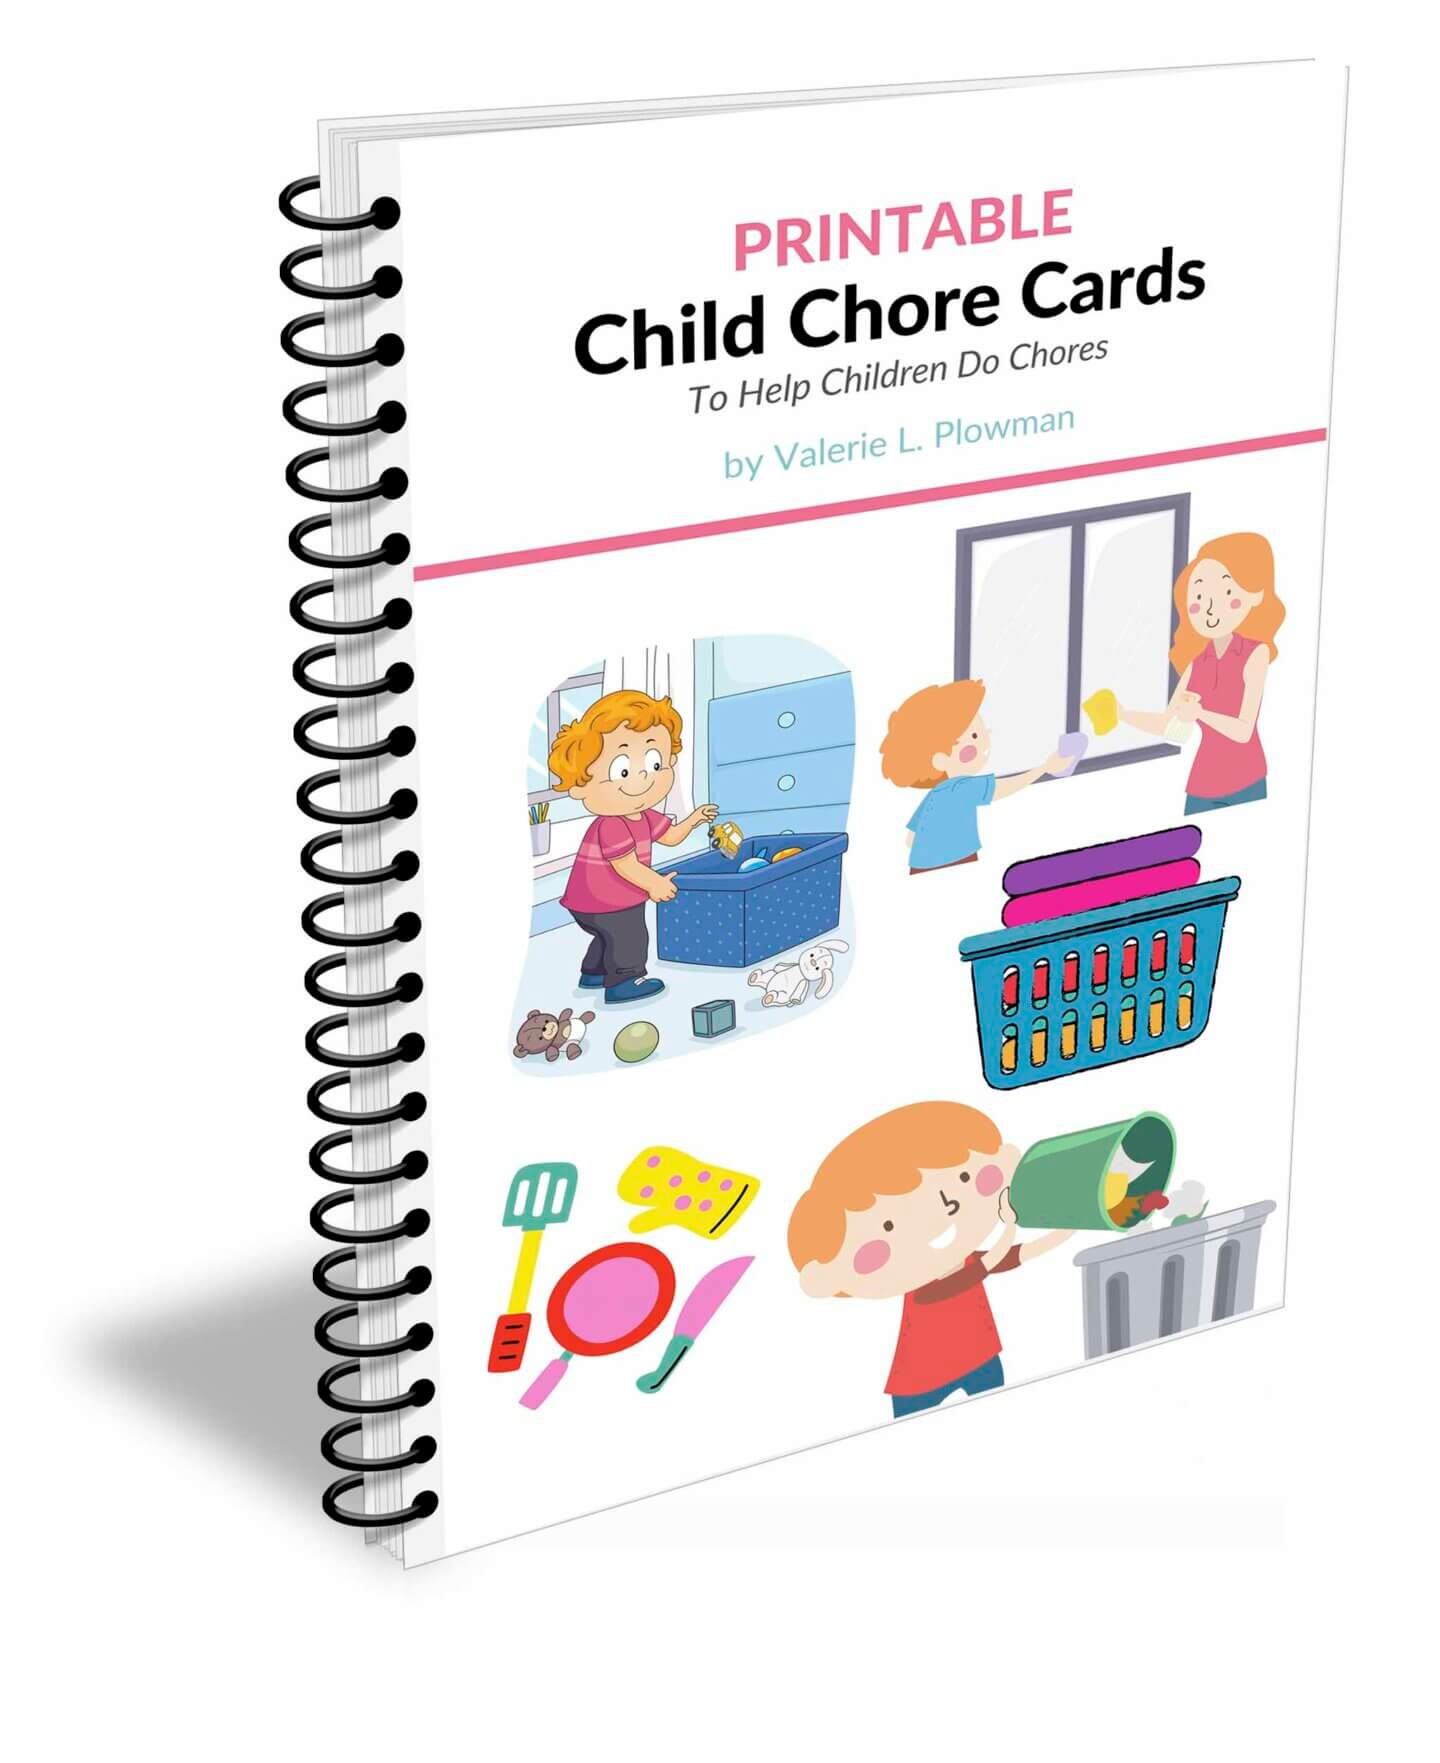 Chore Cards and Chore Chart for 5 year olds